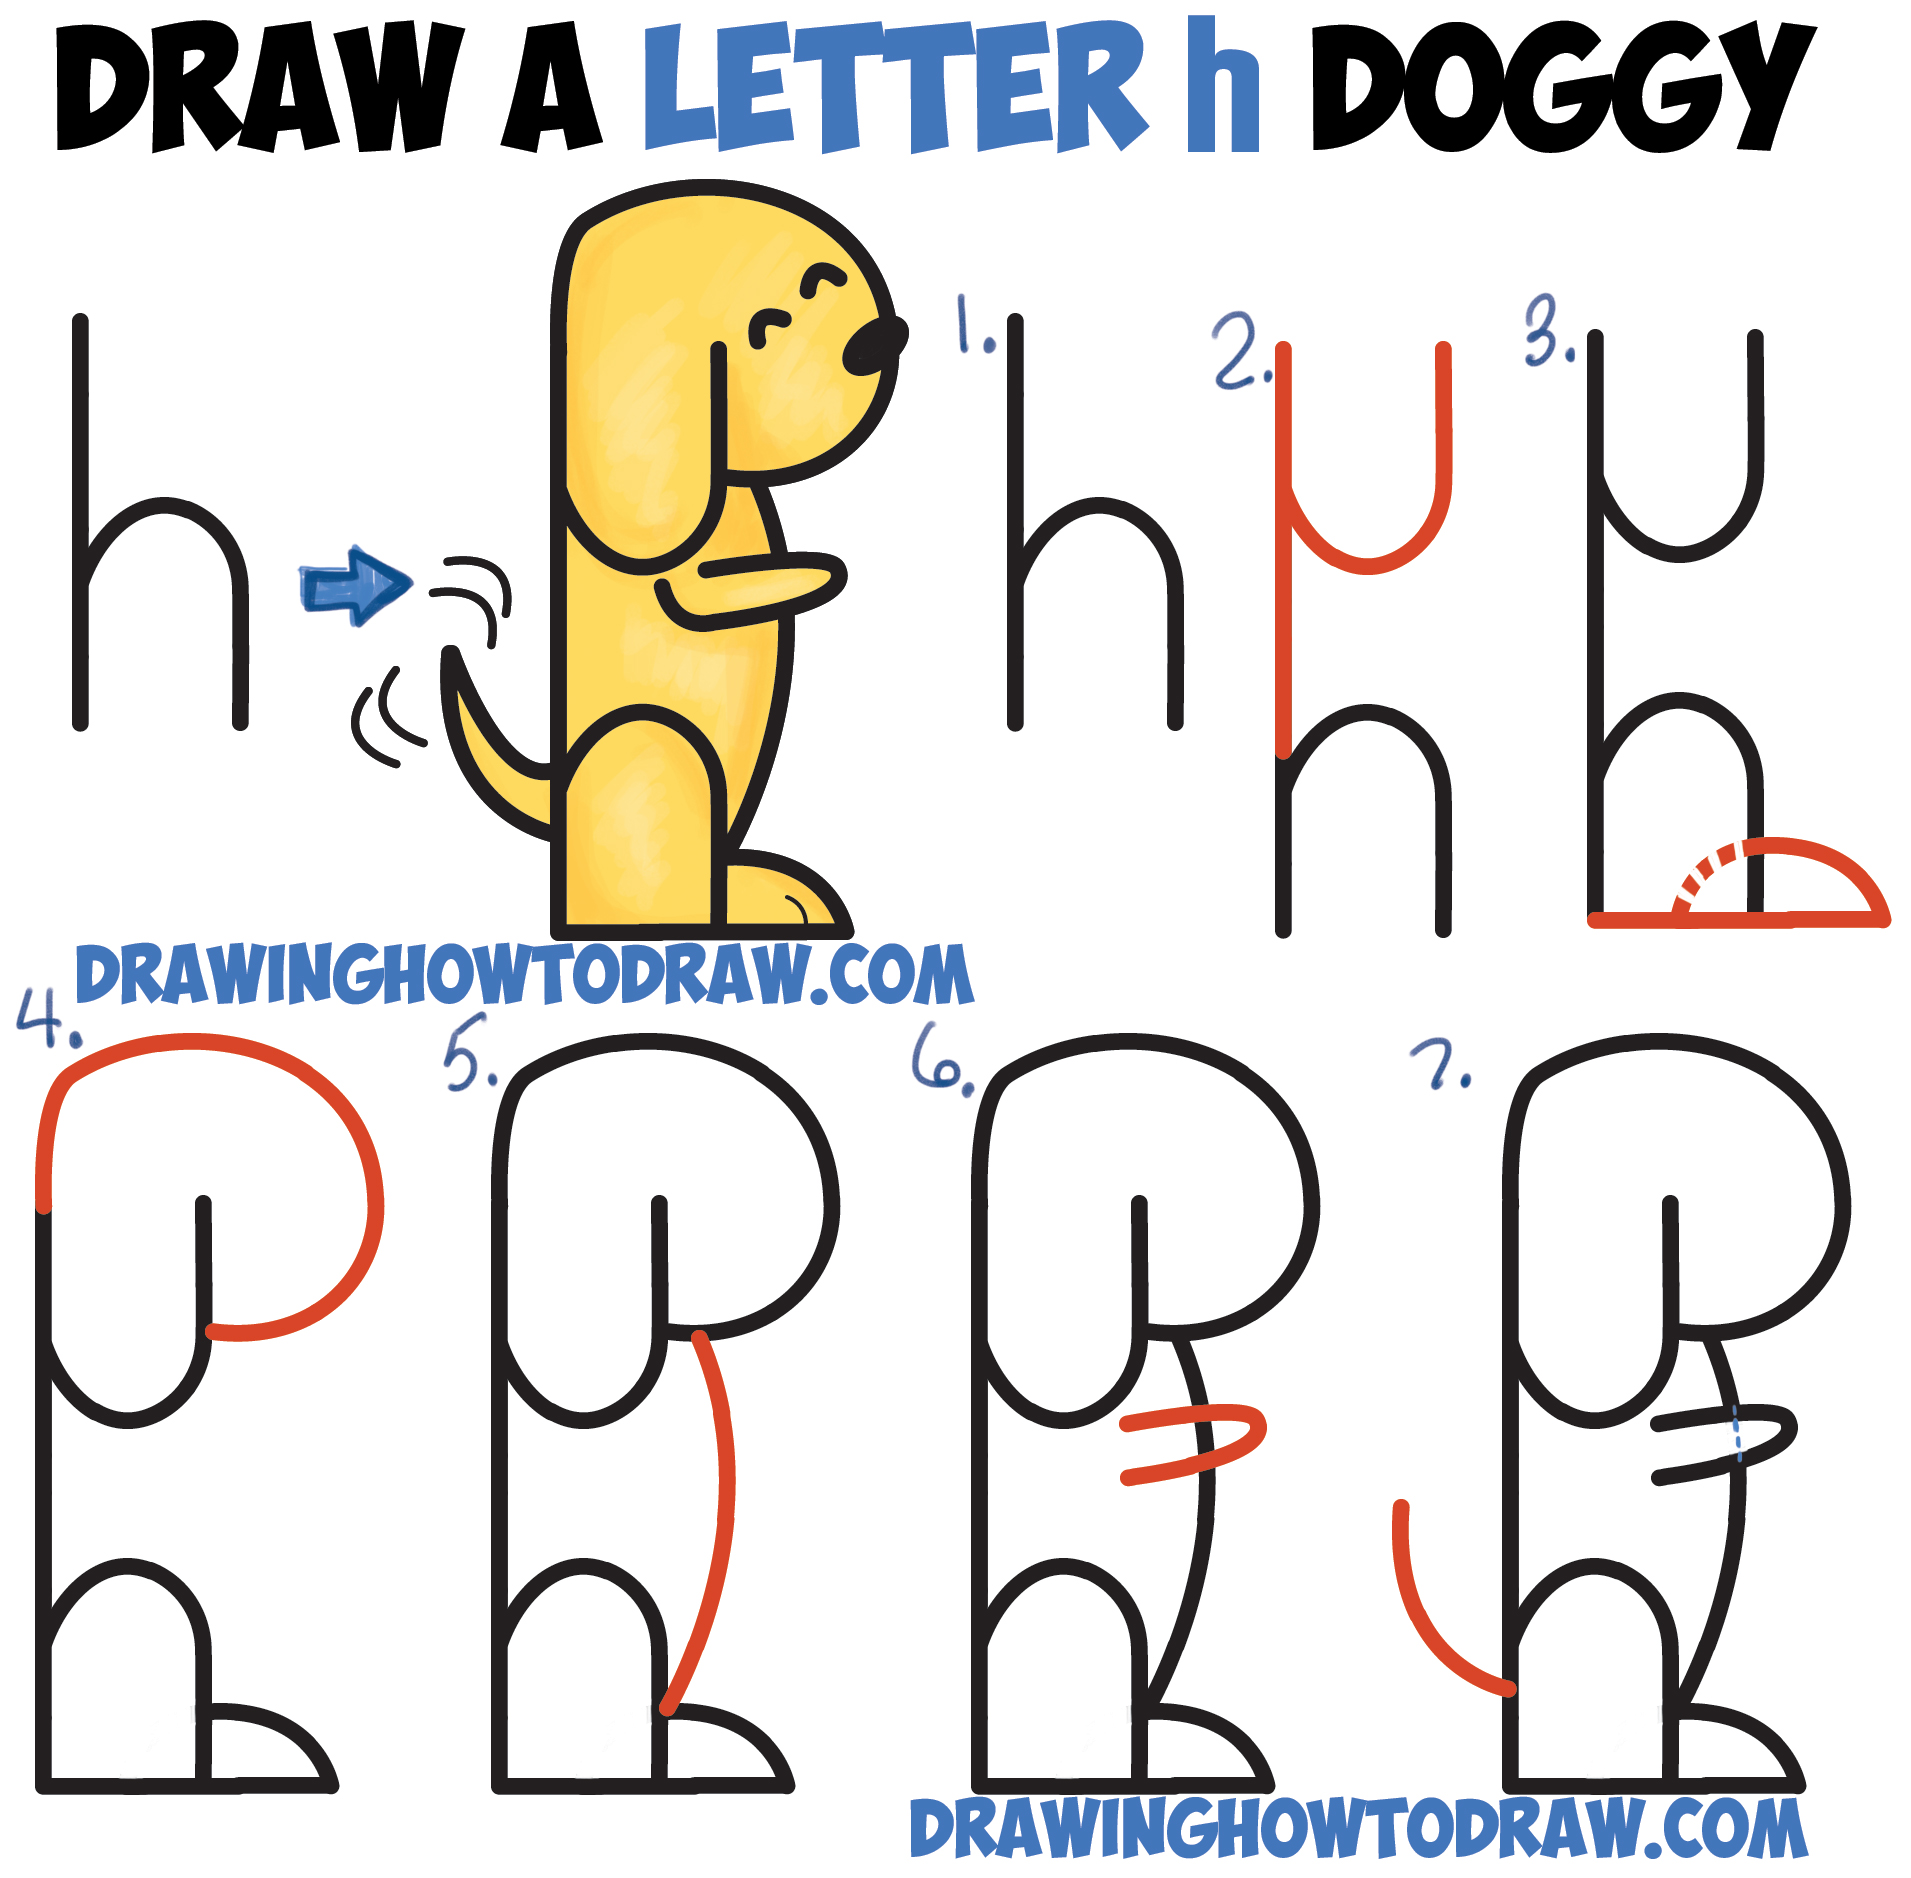 How to Draw a Cartoon Dog Begging from 2 Letter 'h' Shapes ...